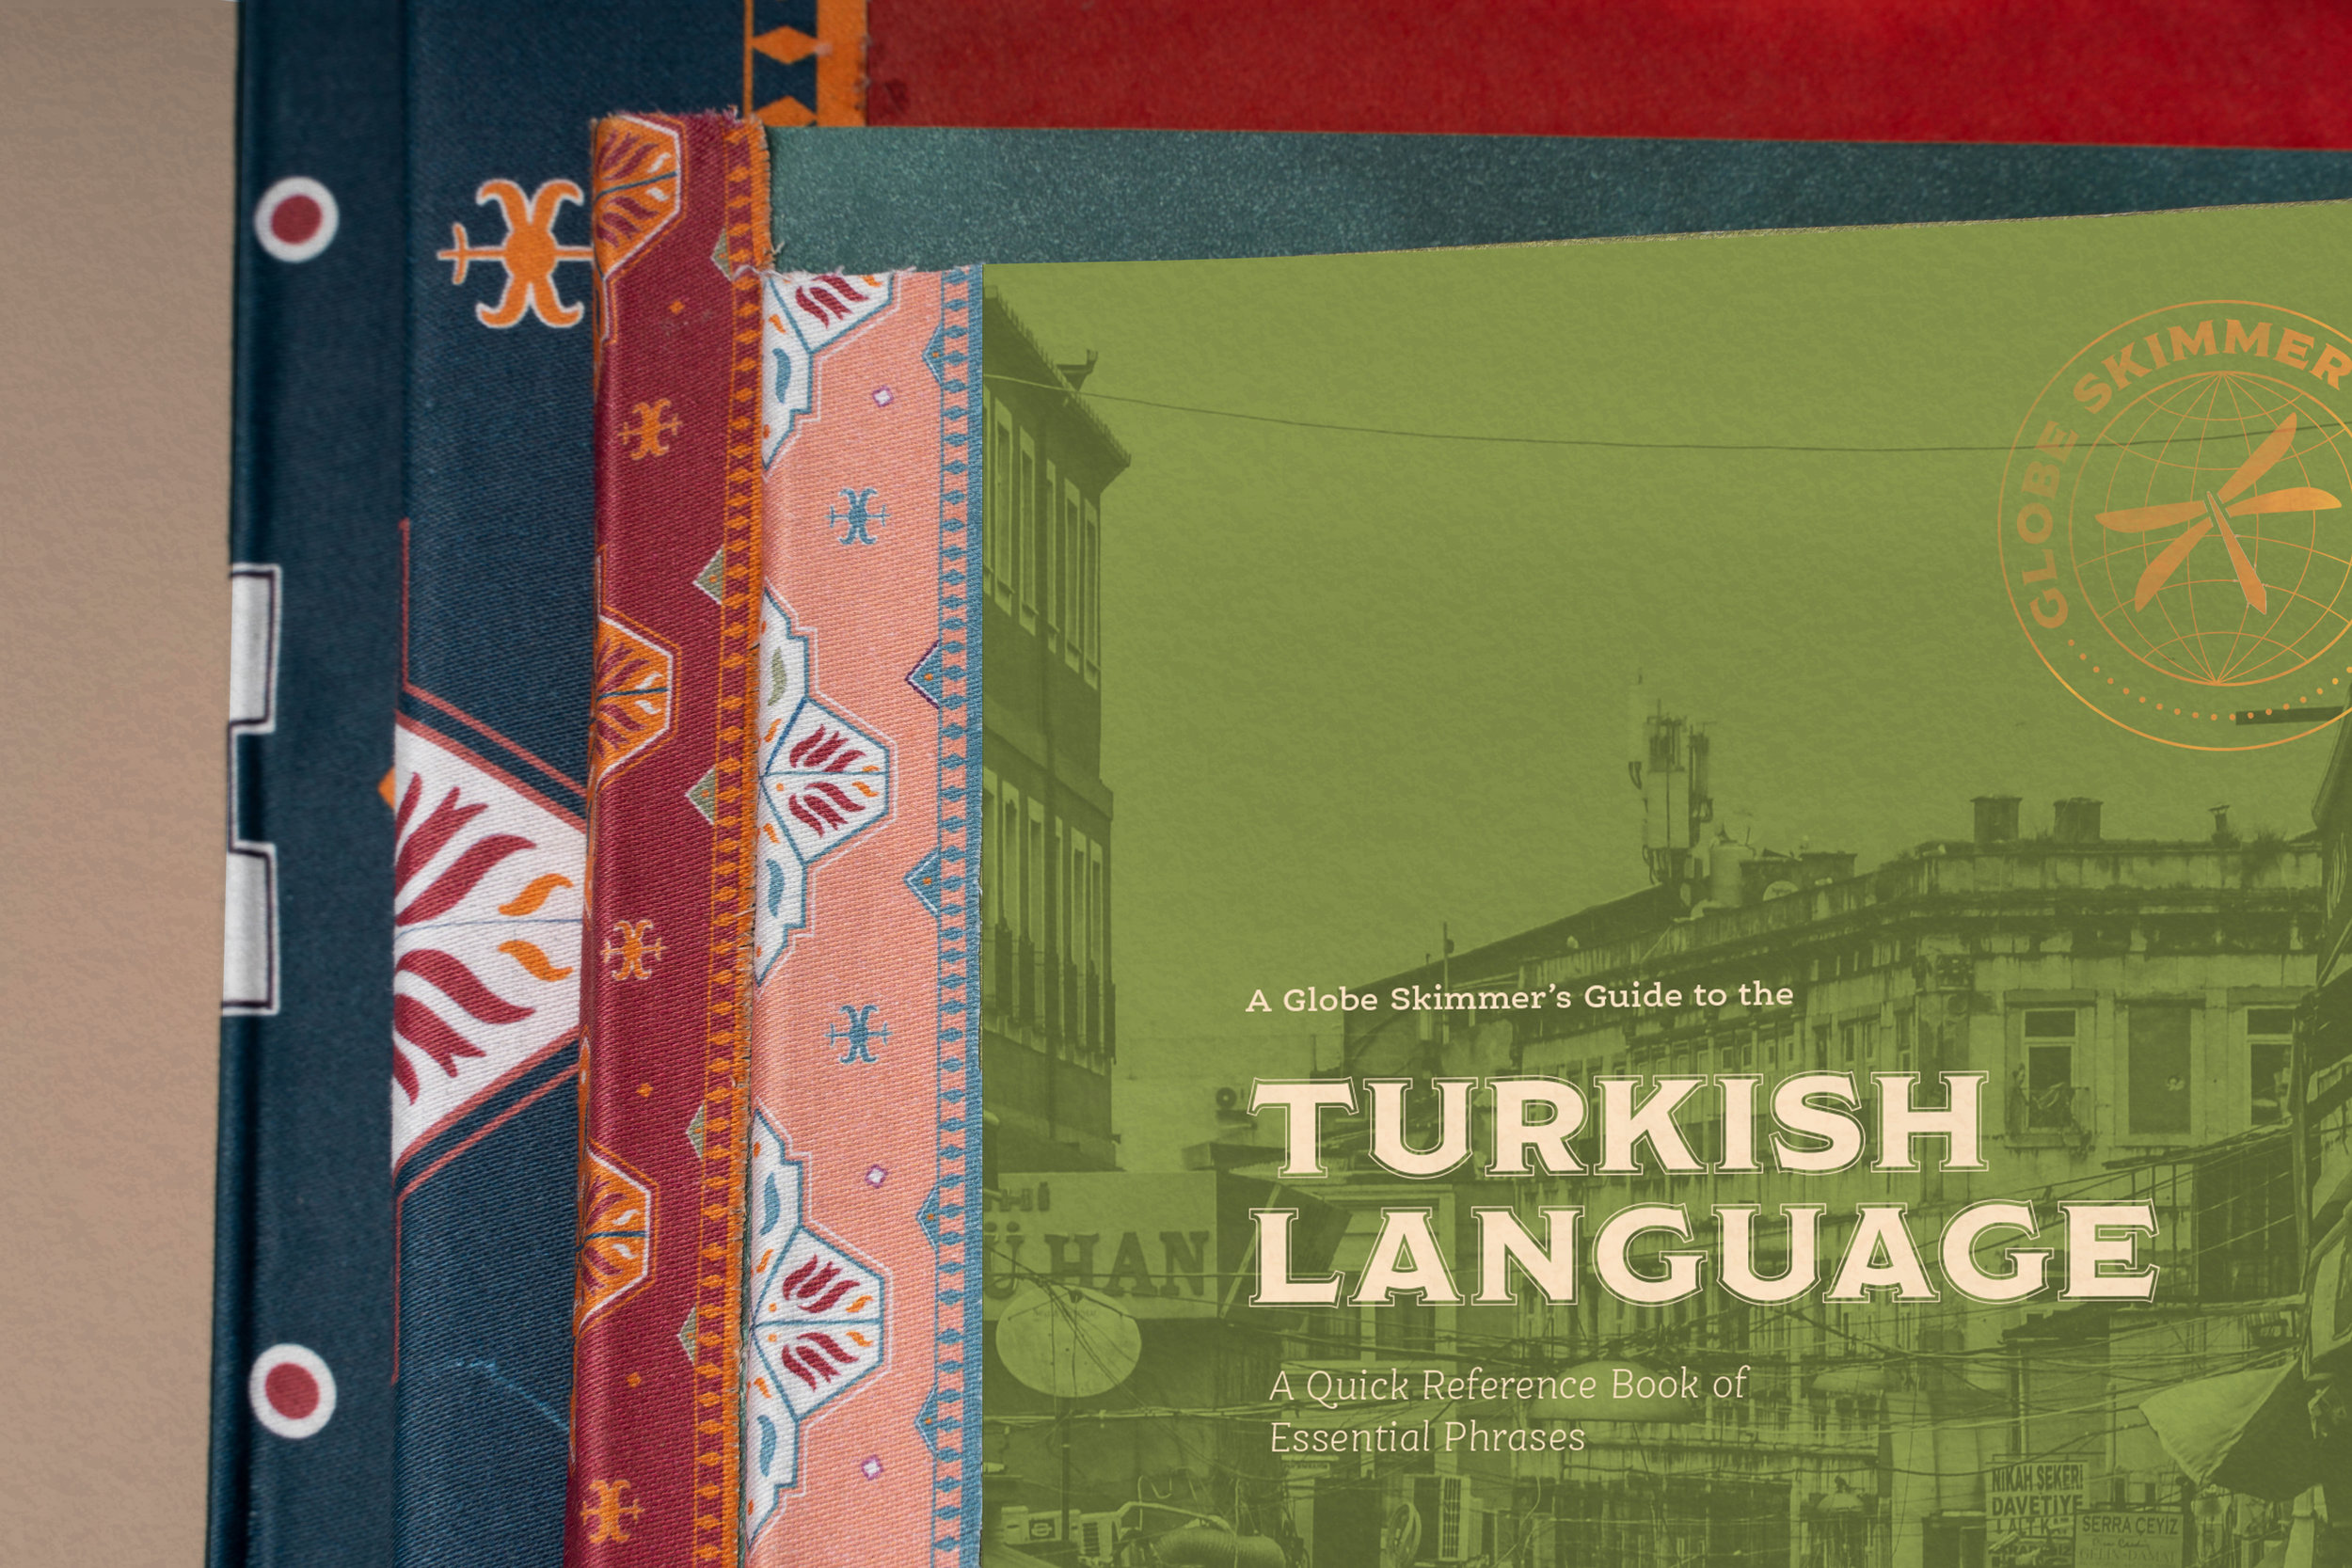 I illustrated the book-cloth on the spines of the books to emulate traditional Anatolian rug patterns.